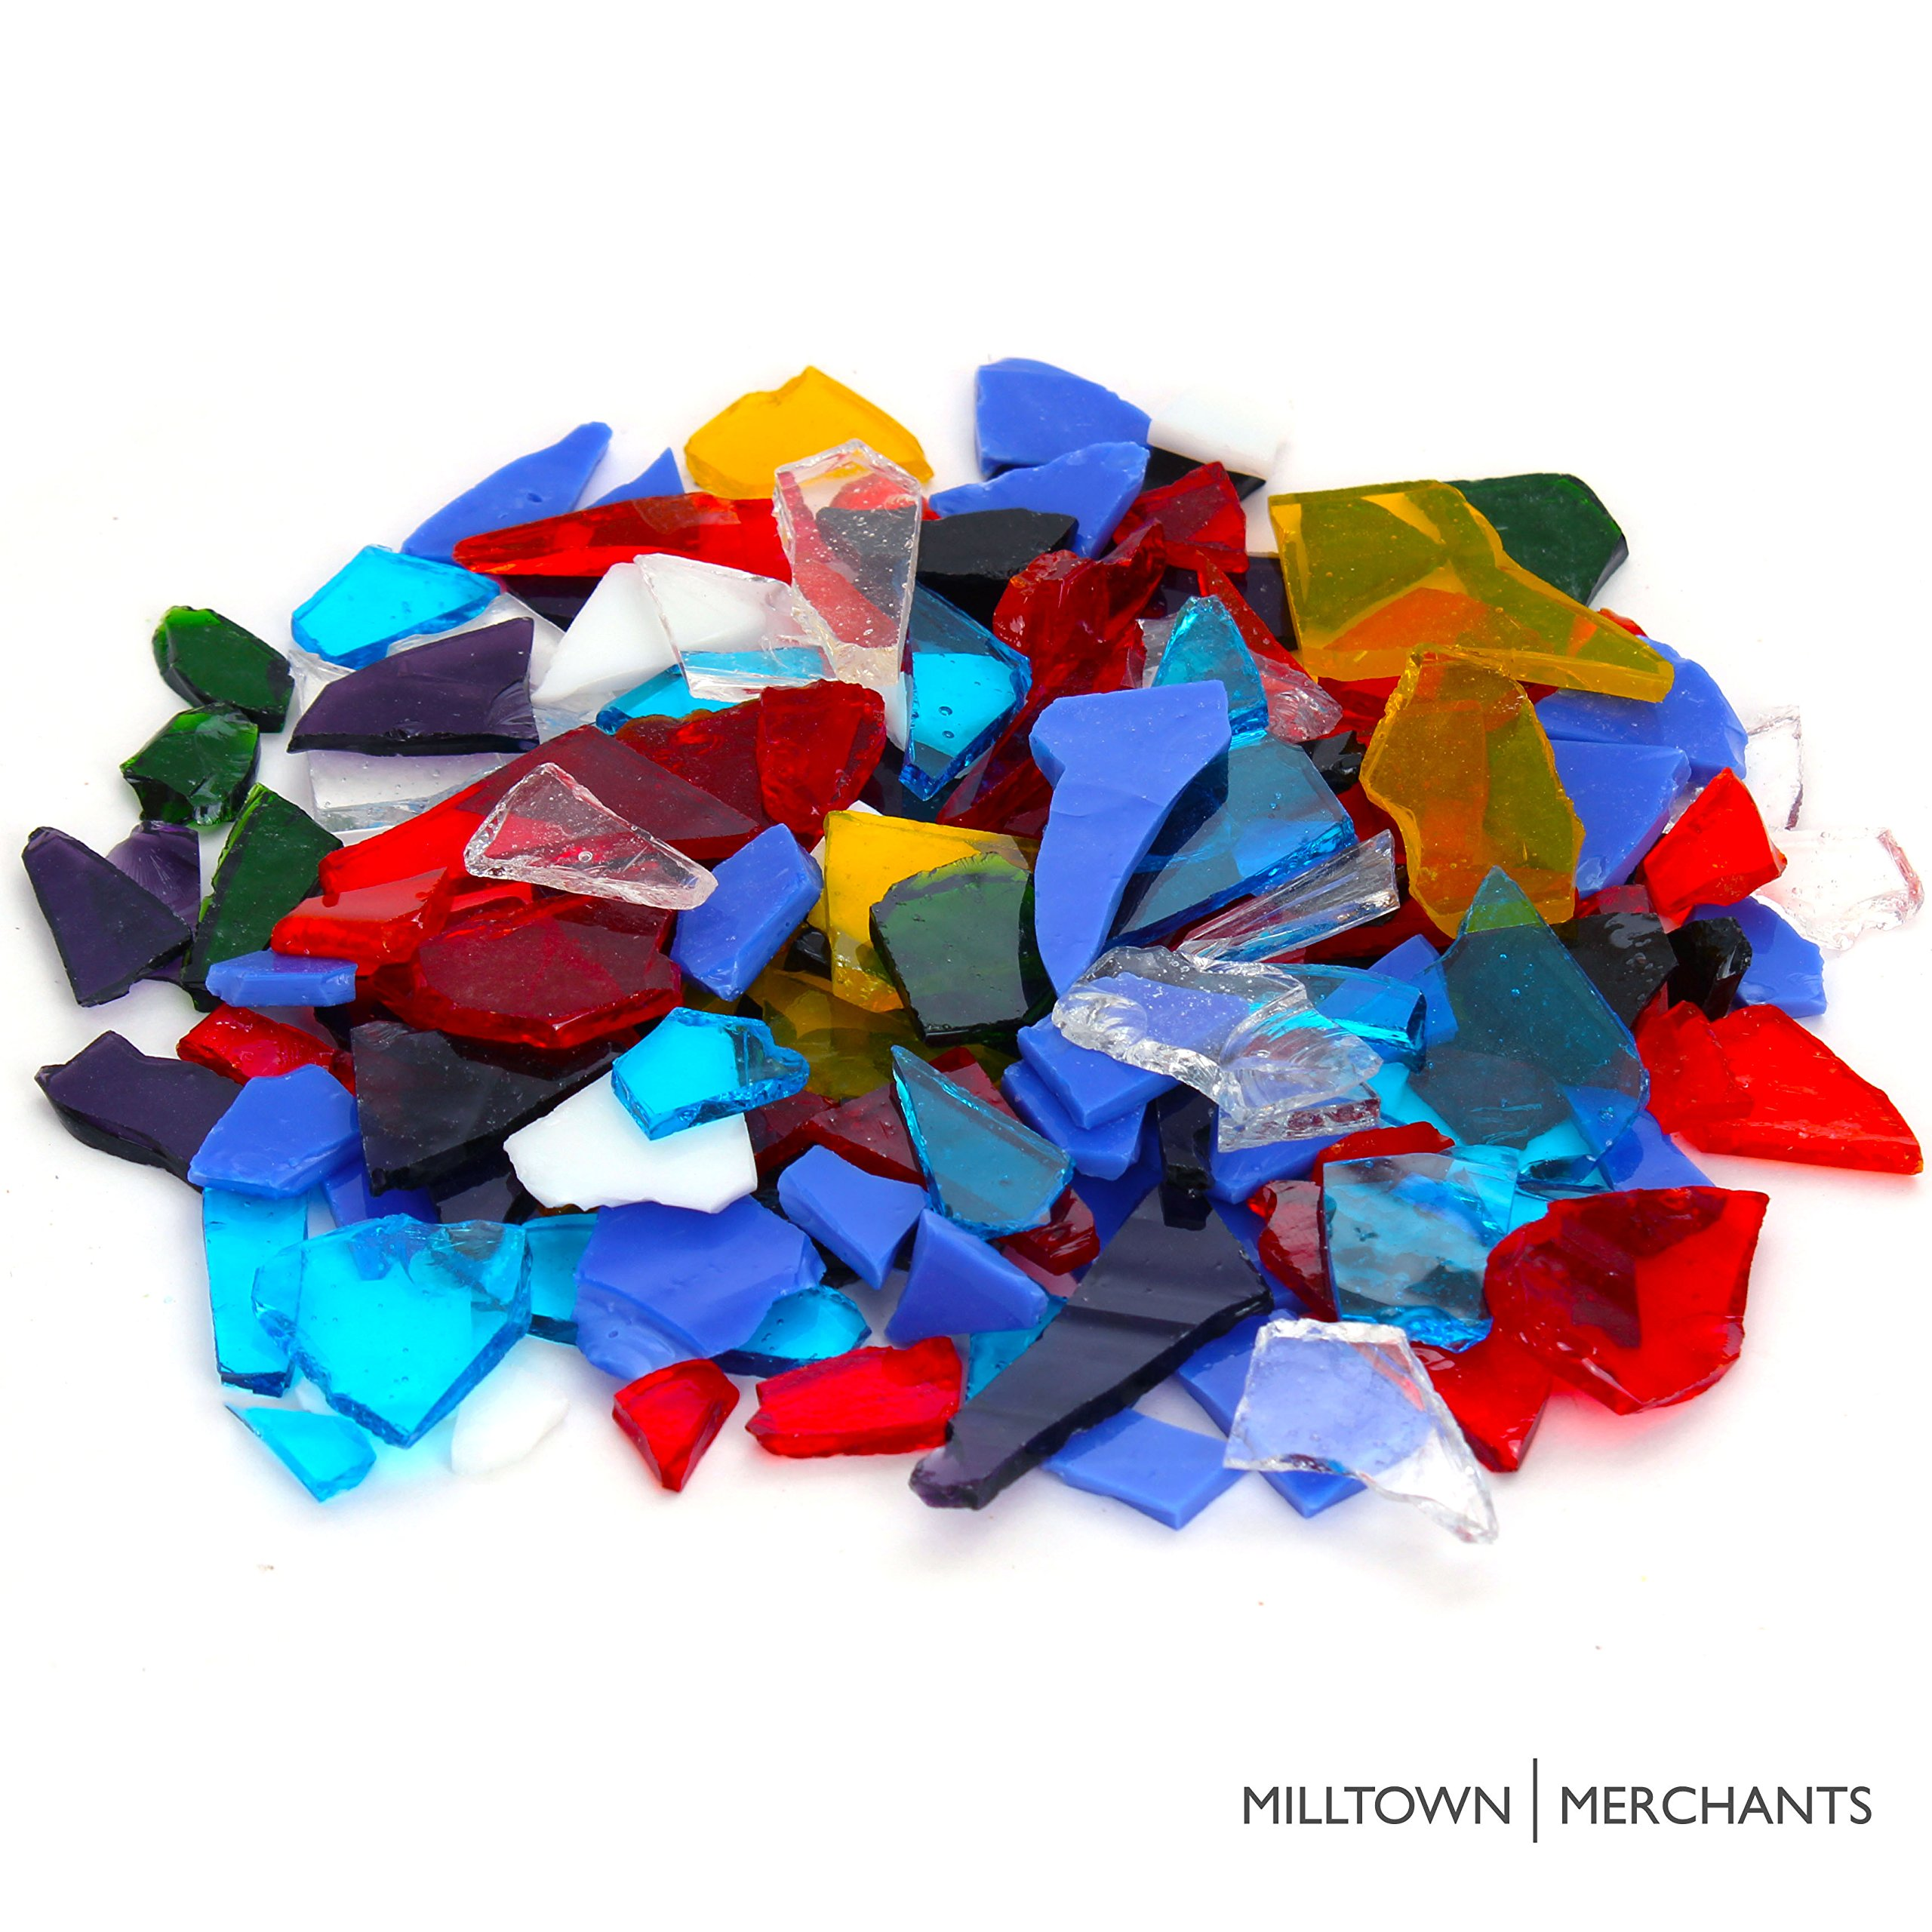 Milltown Merchants™ Stained Glass 10 lb Value Pack - Bright Stained Glass Assortment - Broken Glass for Stepping Stones and Crafts - Mixed Color Glass Coblets